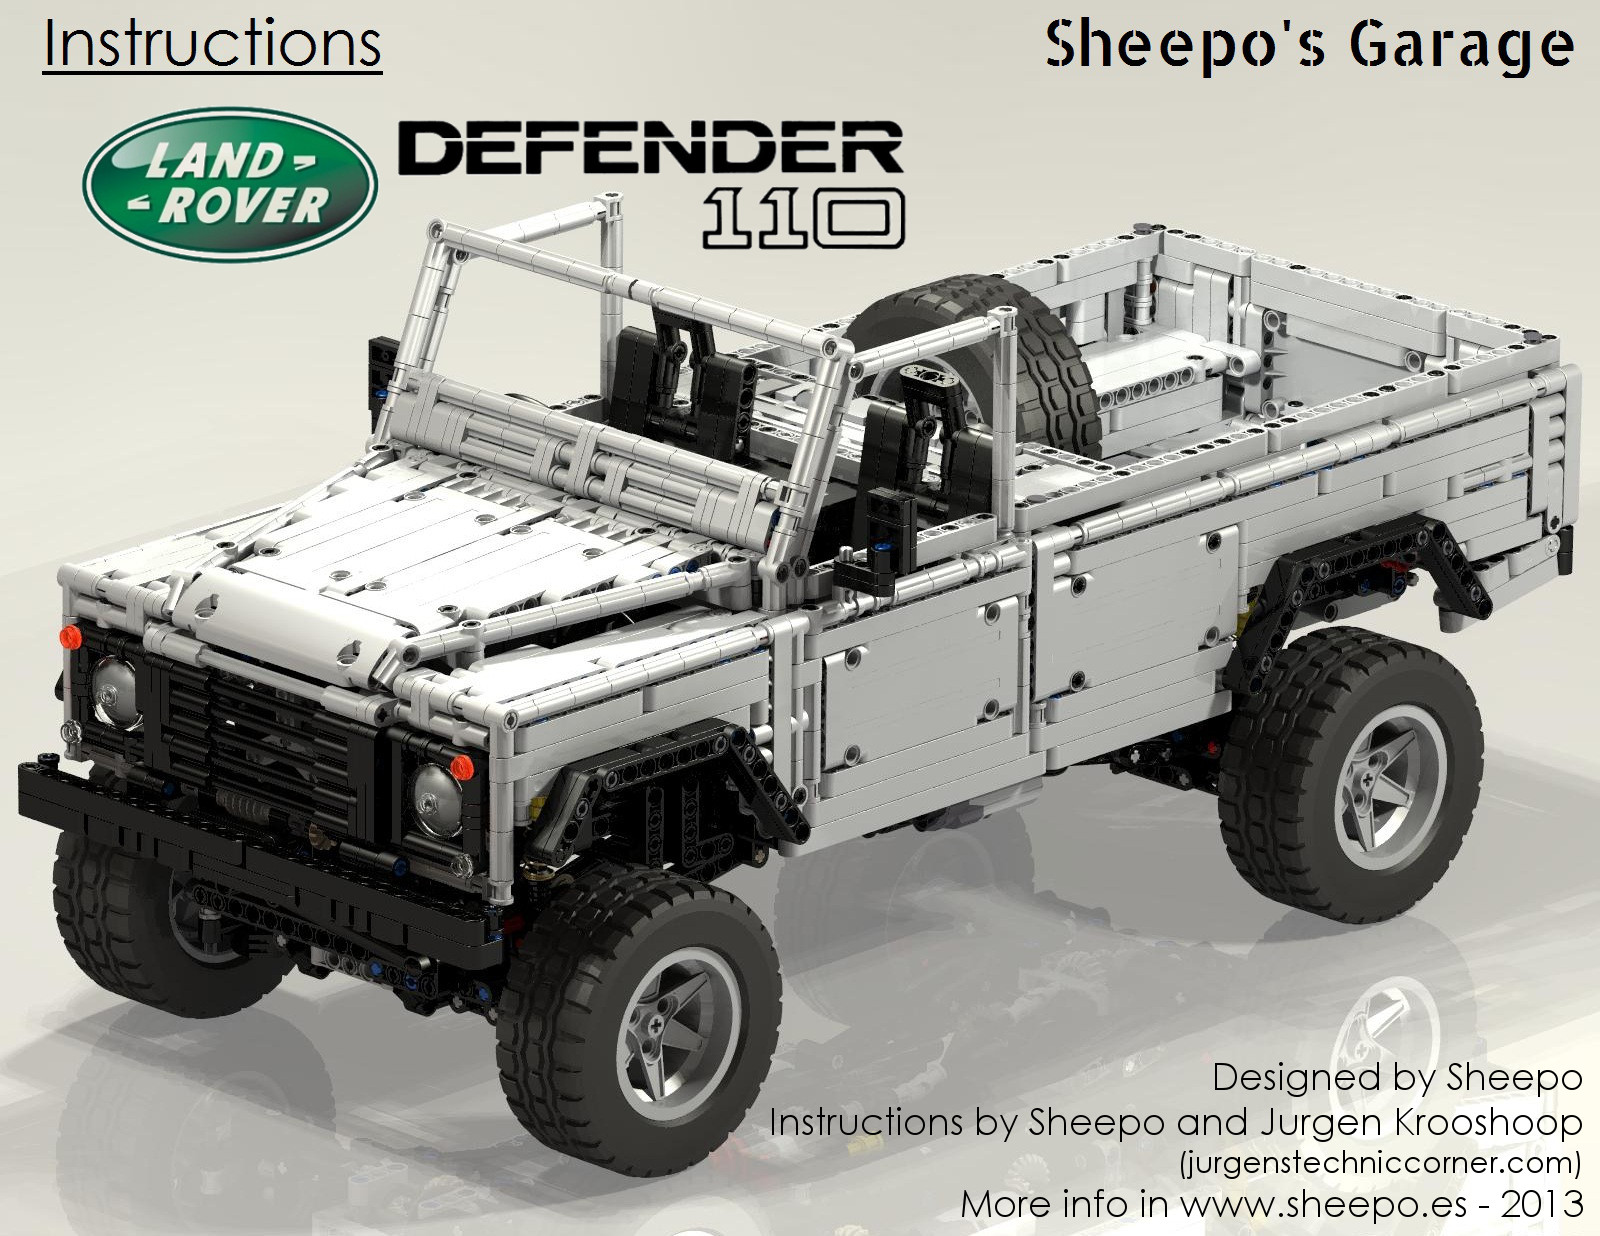 sheepo s garage land rover defender 110 instructions are now available rh sheepo es Land Rover Discovery Owner's Manual Land Rover LR3 Manual